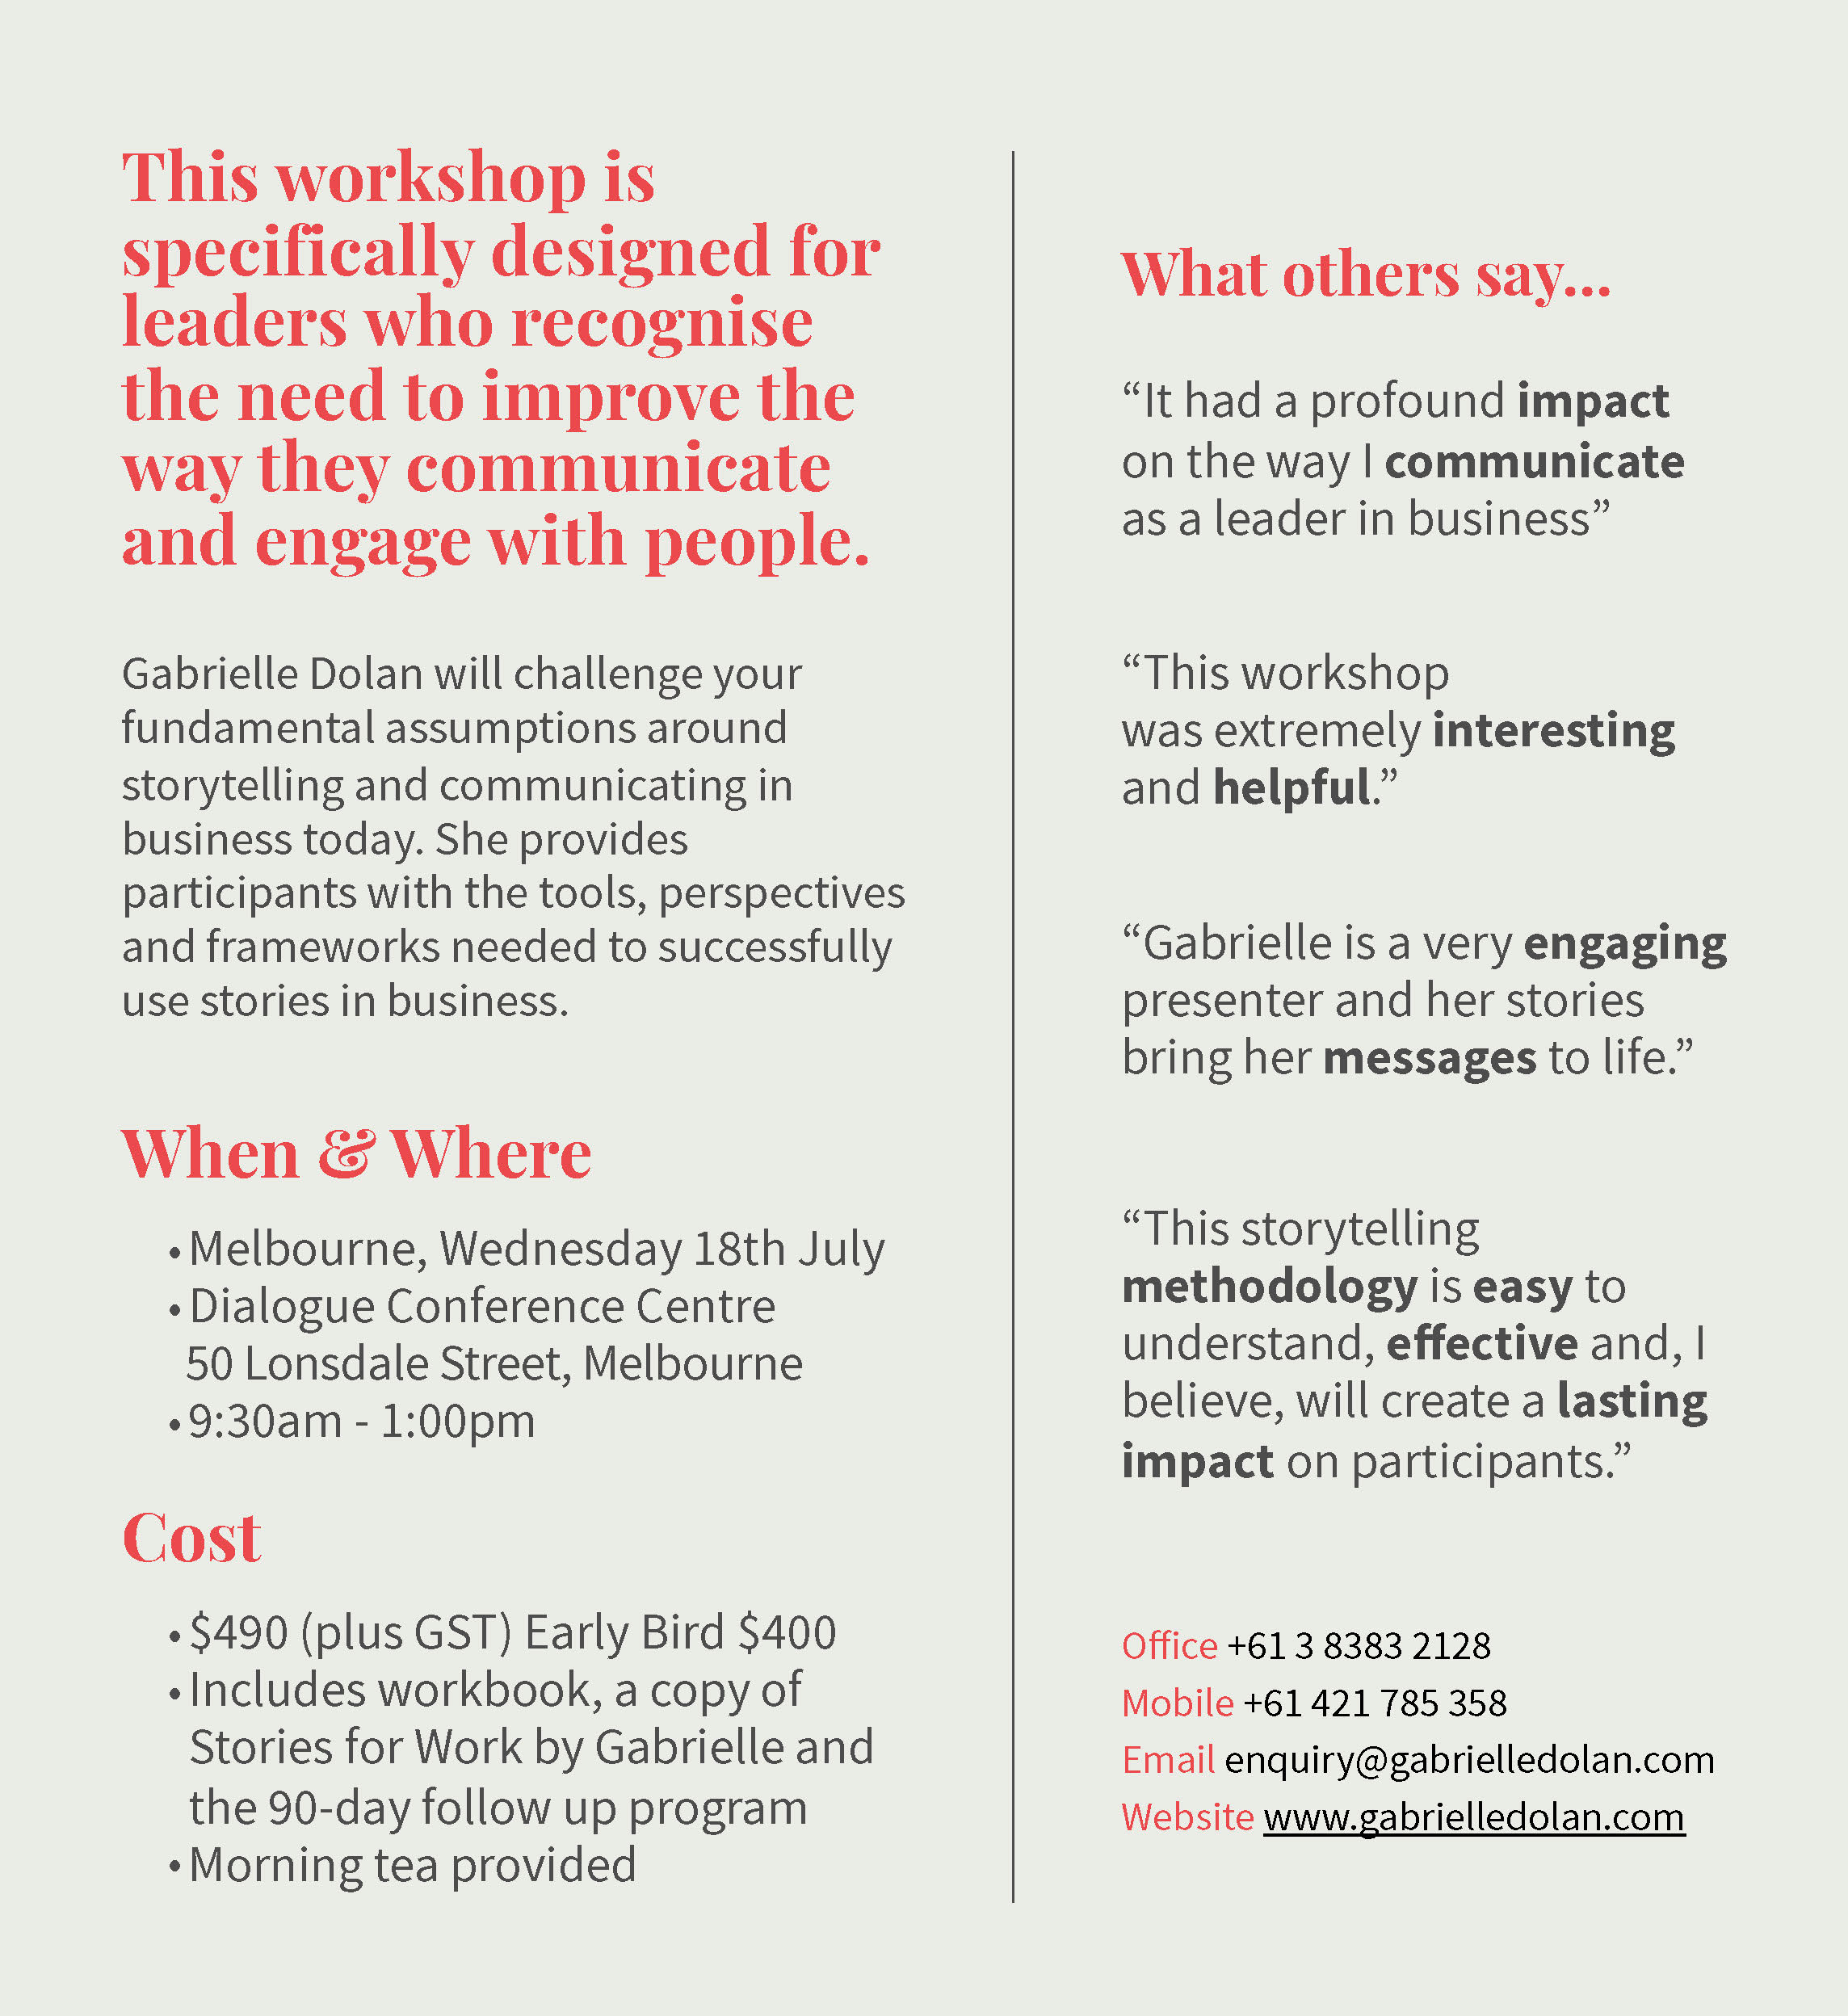 Public Business Storytelling Workshop - Description